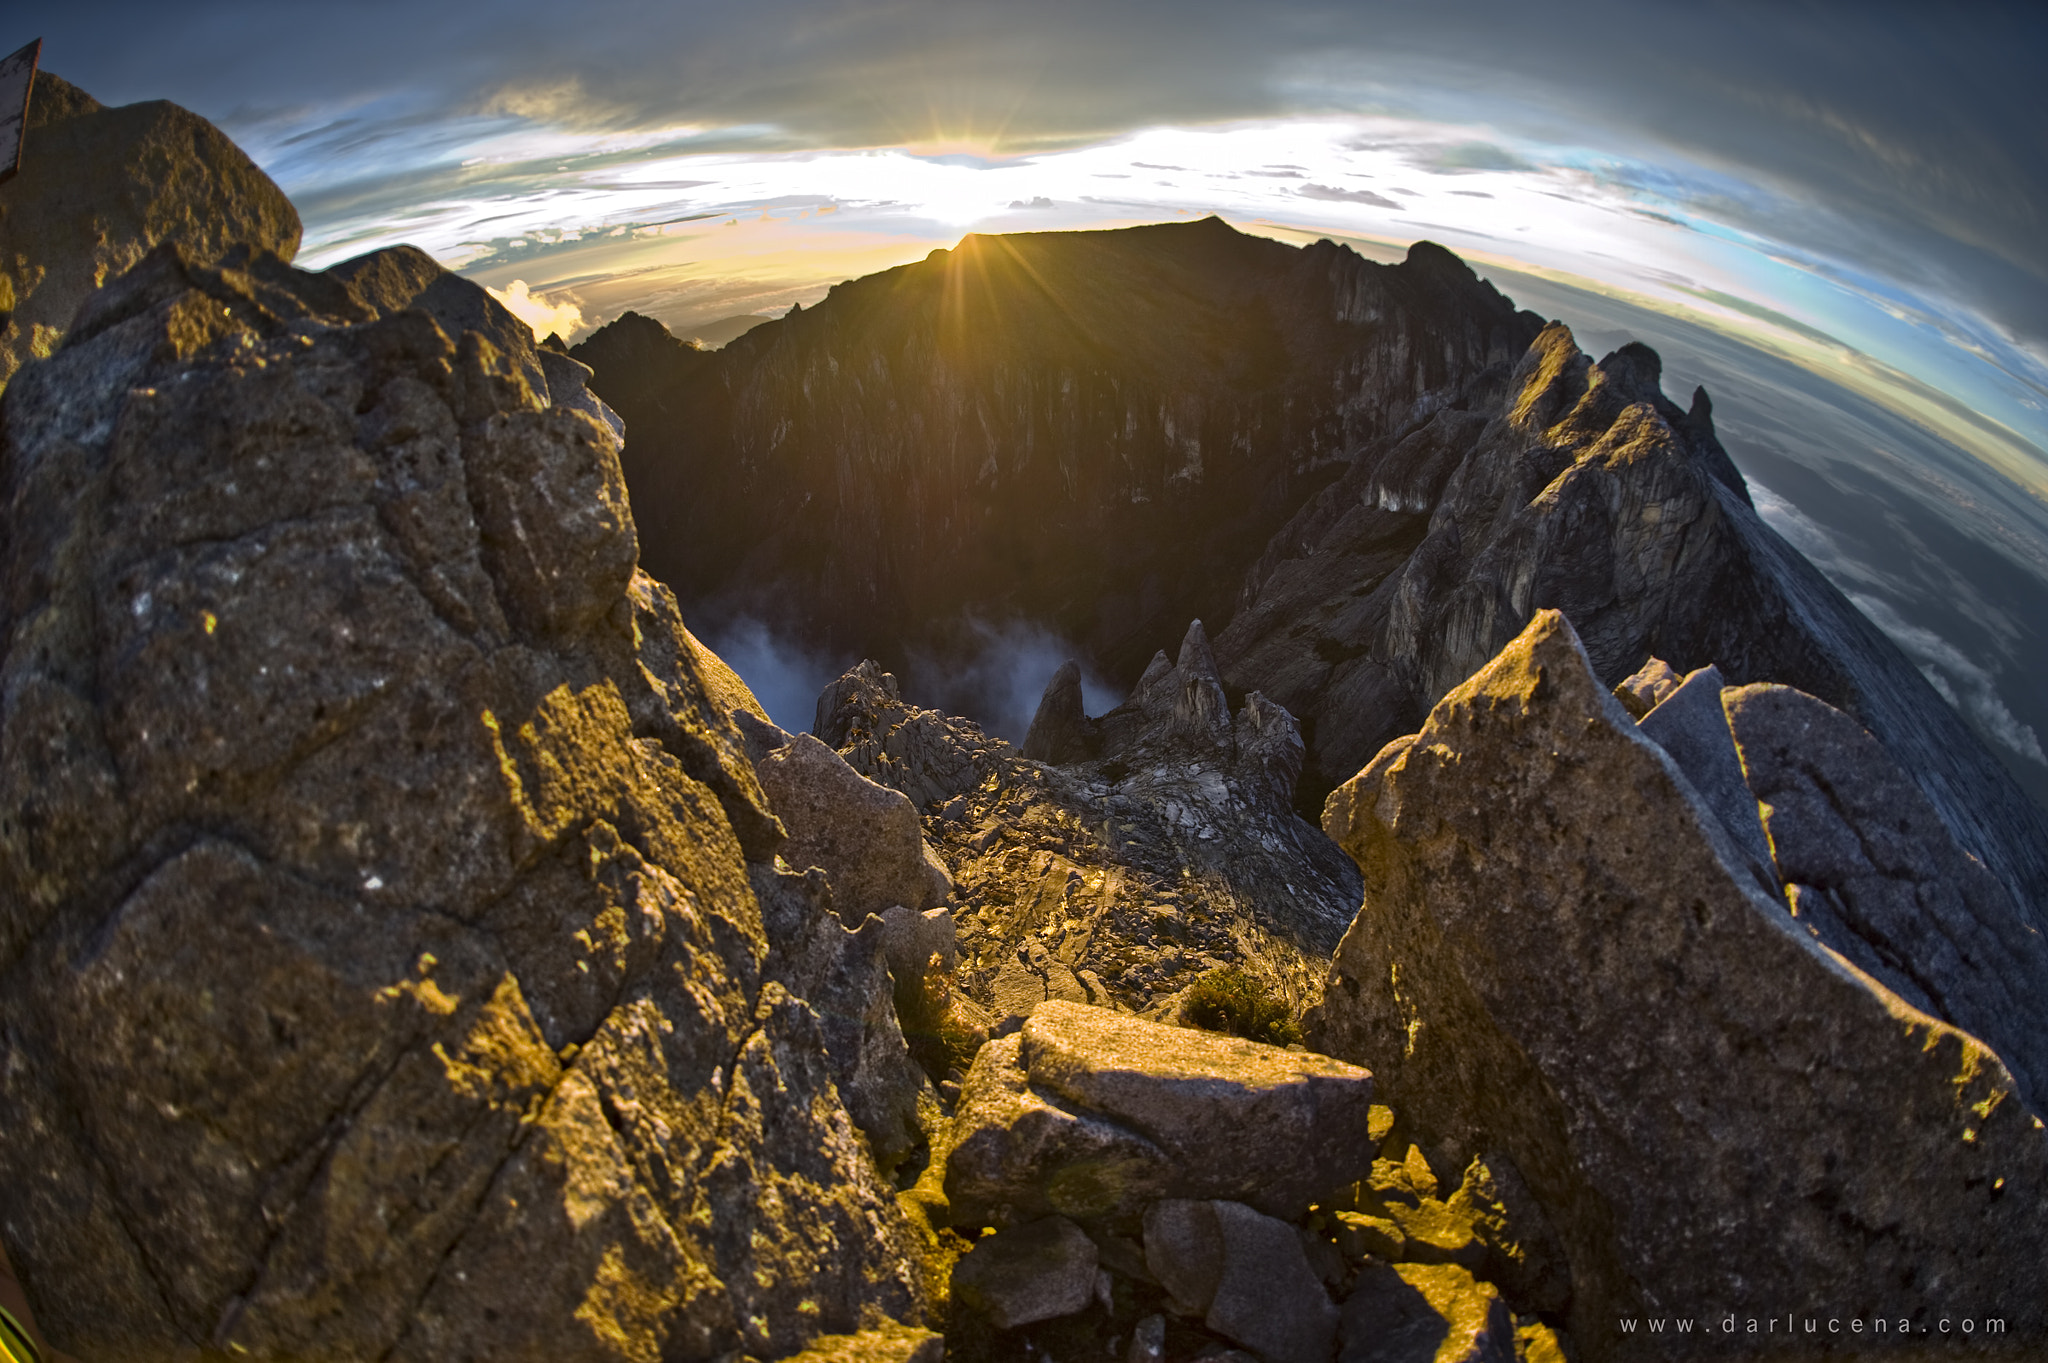 Photograph SUNRISE @ MT KINABALU'S LOW'S PEAK overlooking LOW'S GULLY 1800M DEEP or more by Darwin Lucena on 500px